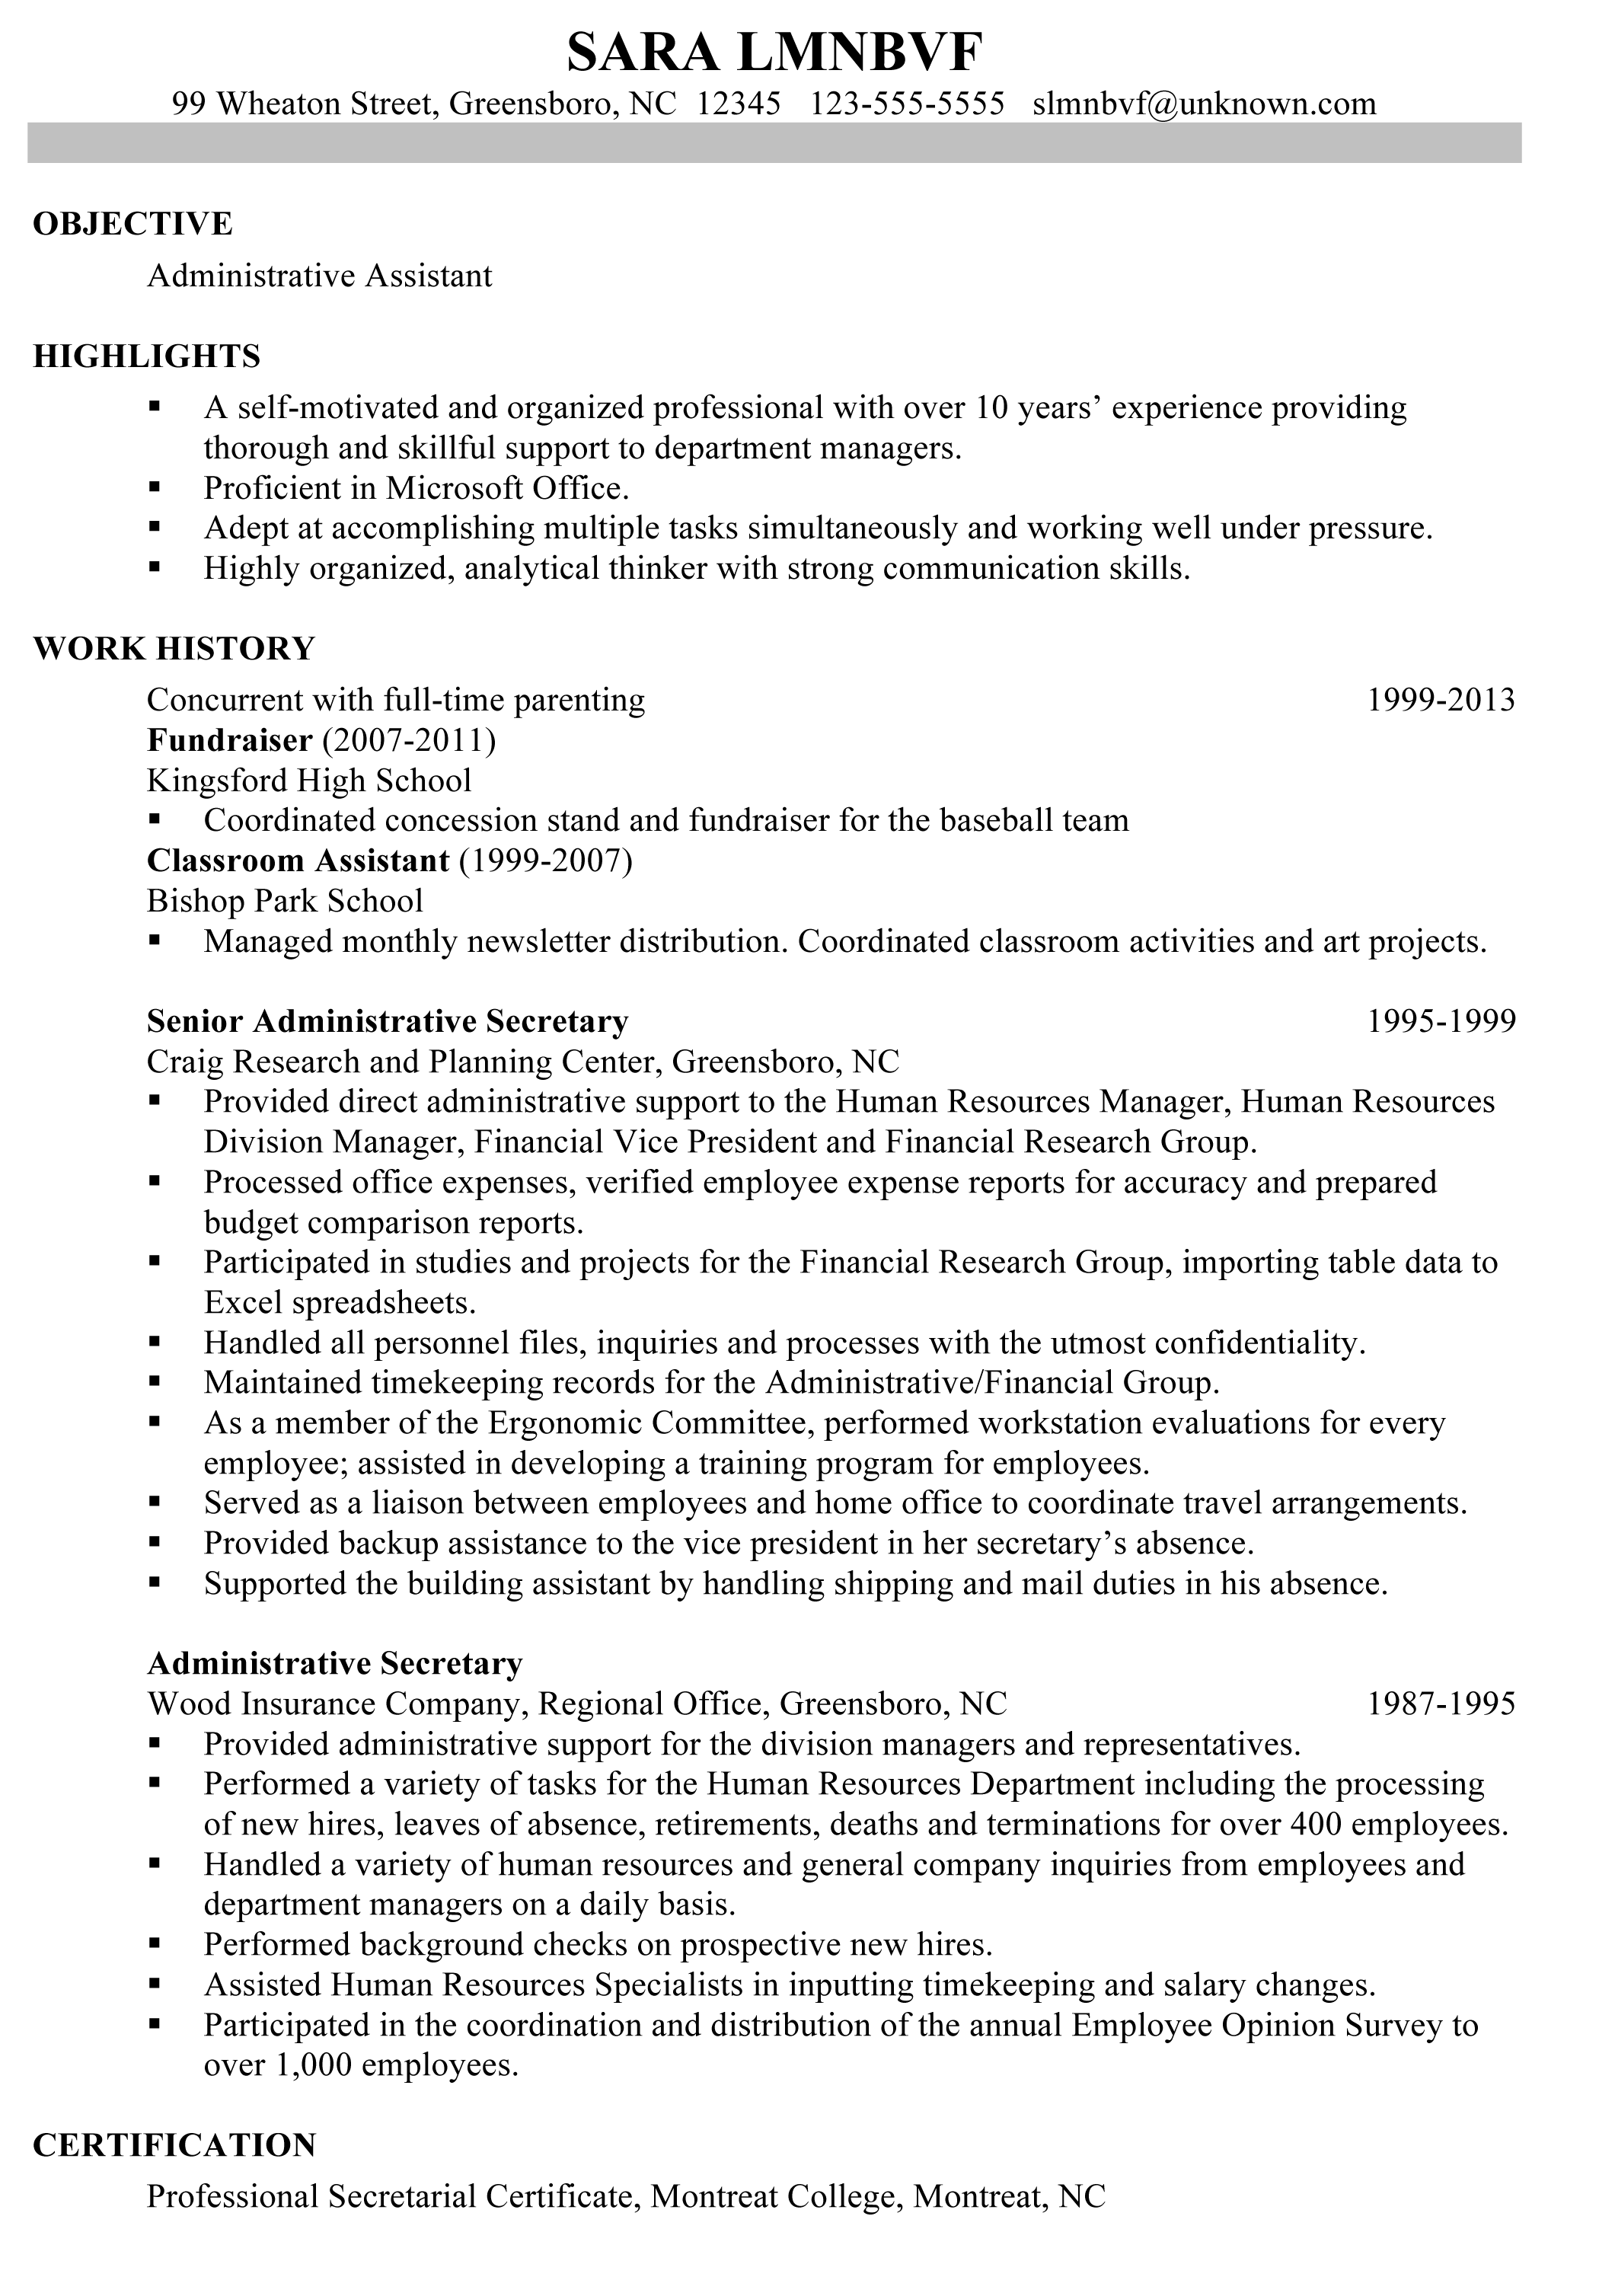 Matching Resume Cover Letter Job Reference Page Samples